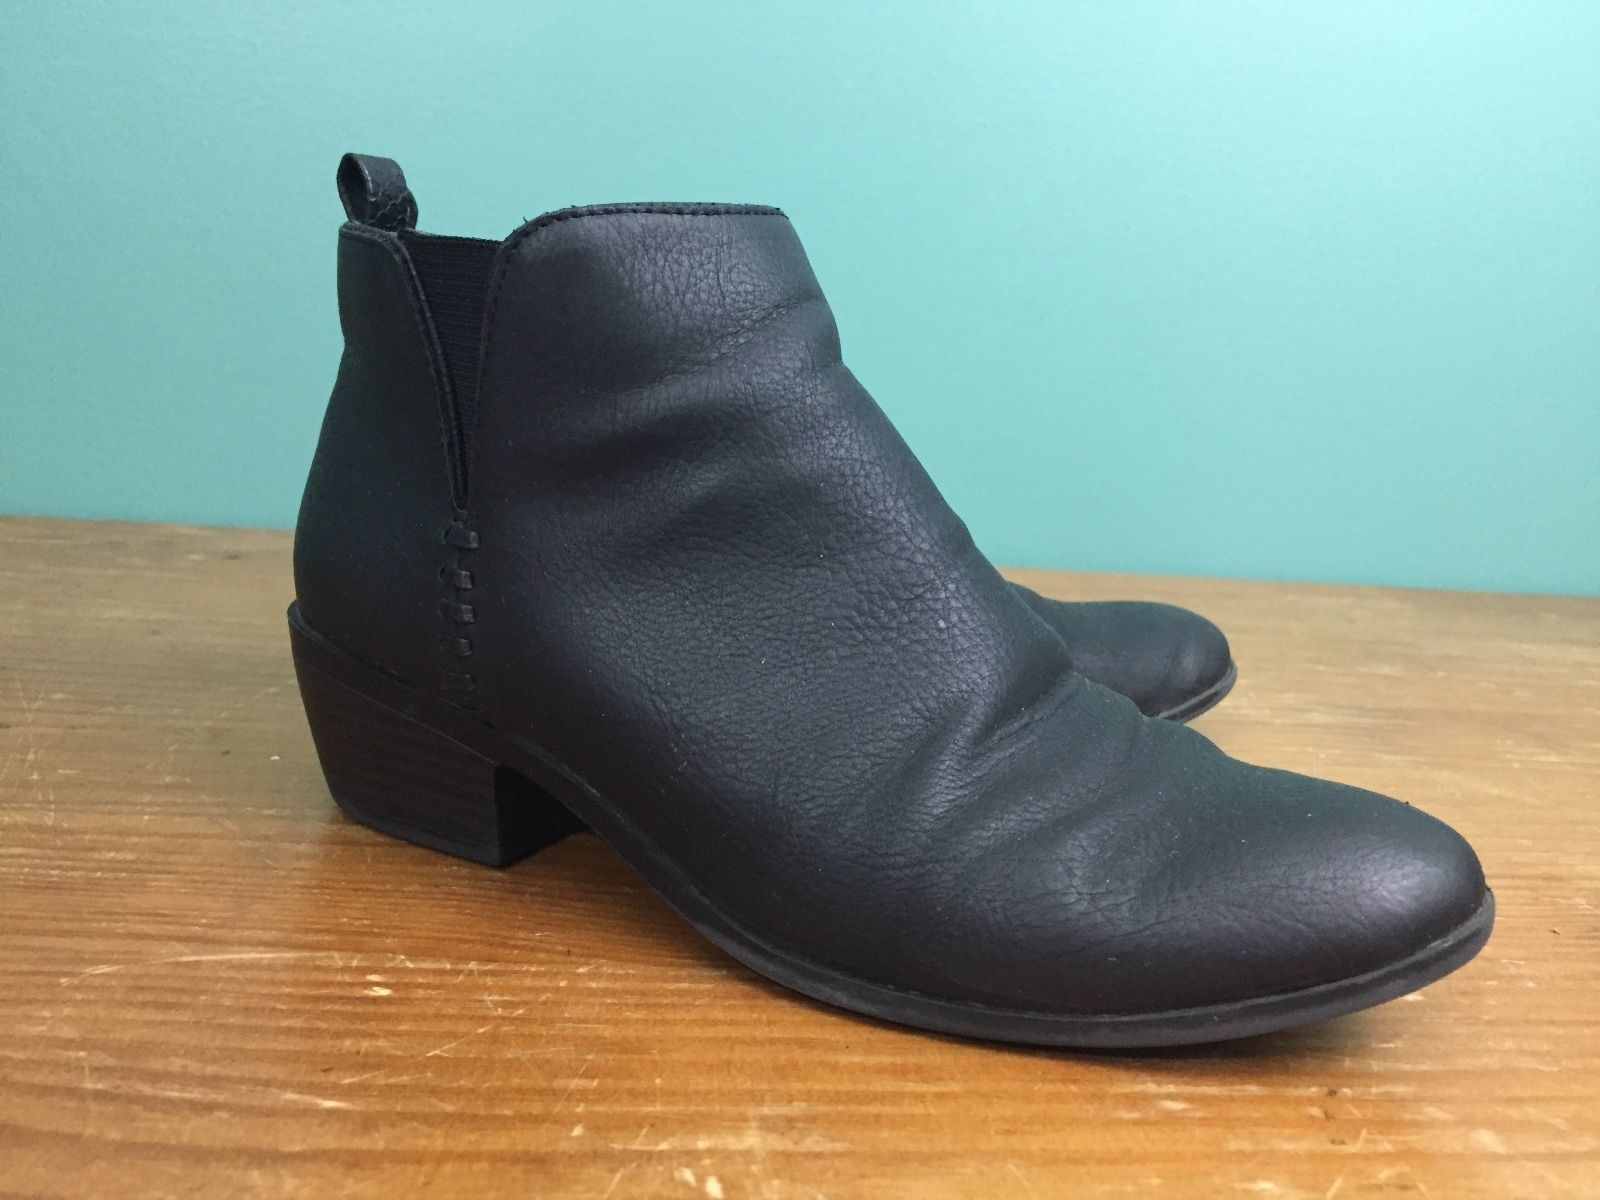 0f8adc0a8c Small & Libby Women's Side Zip Ankle Boots - Size 6 - Black Faux Leather -  $14.97